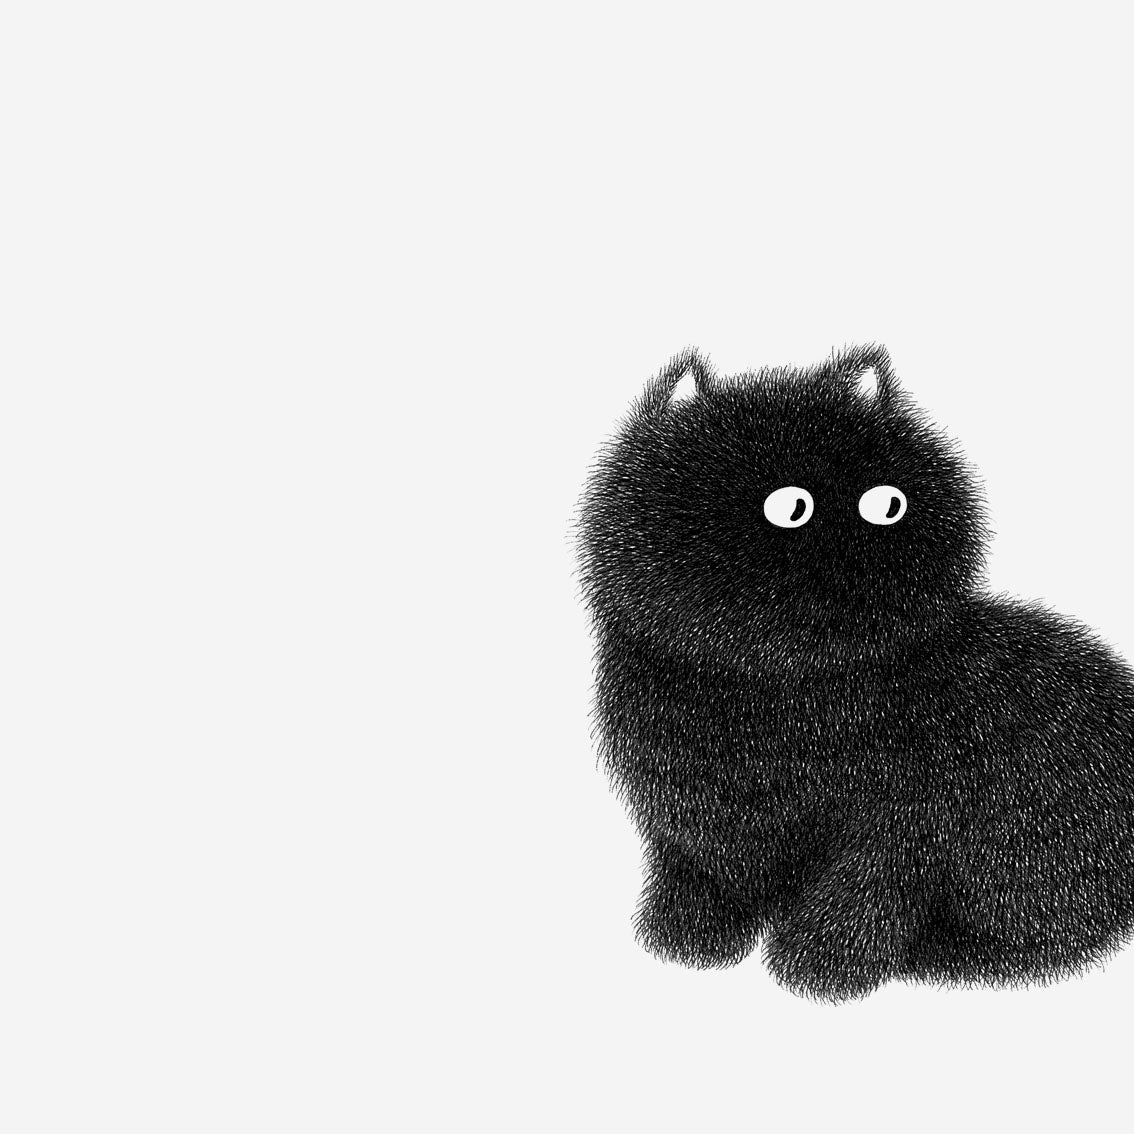 Image of Kitty No.17 – 39x28cm Limited Edition Print